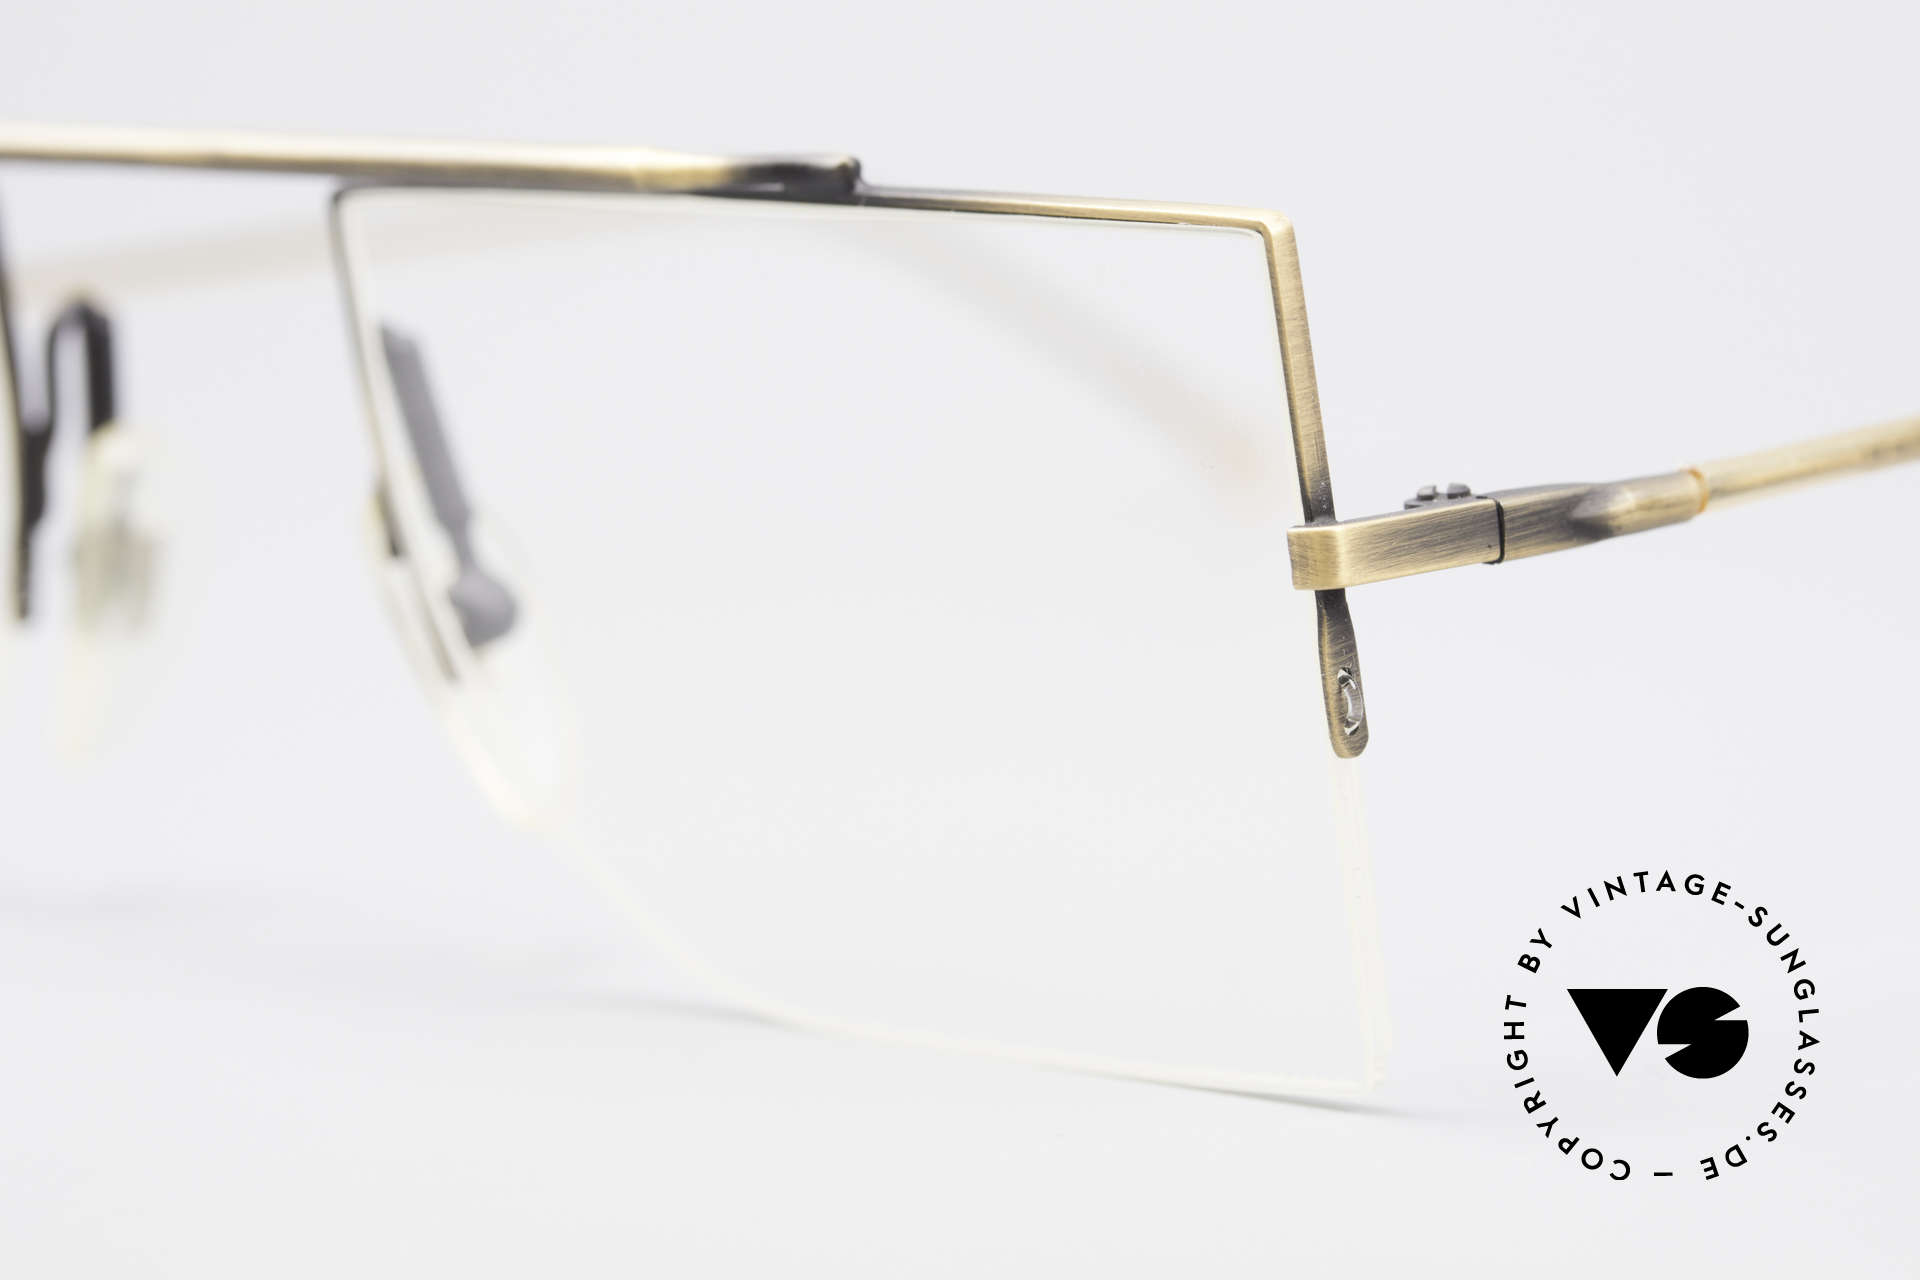 L.A. Eyeworks BURBANK 442 True Vintage Eyeglasses, timeless & puristic, at the same time - a true classic, Made for Men and Women